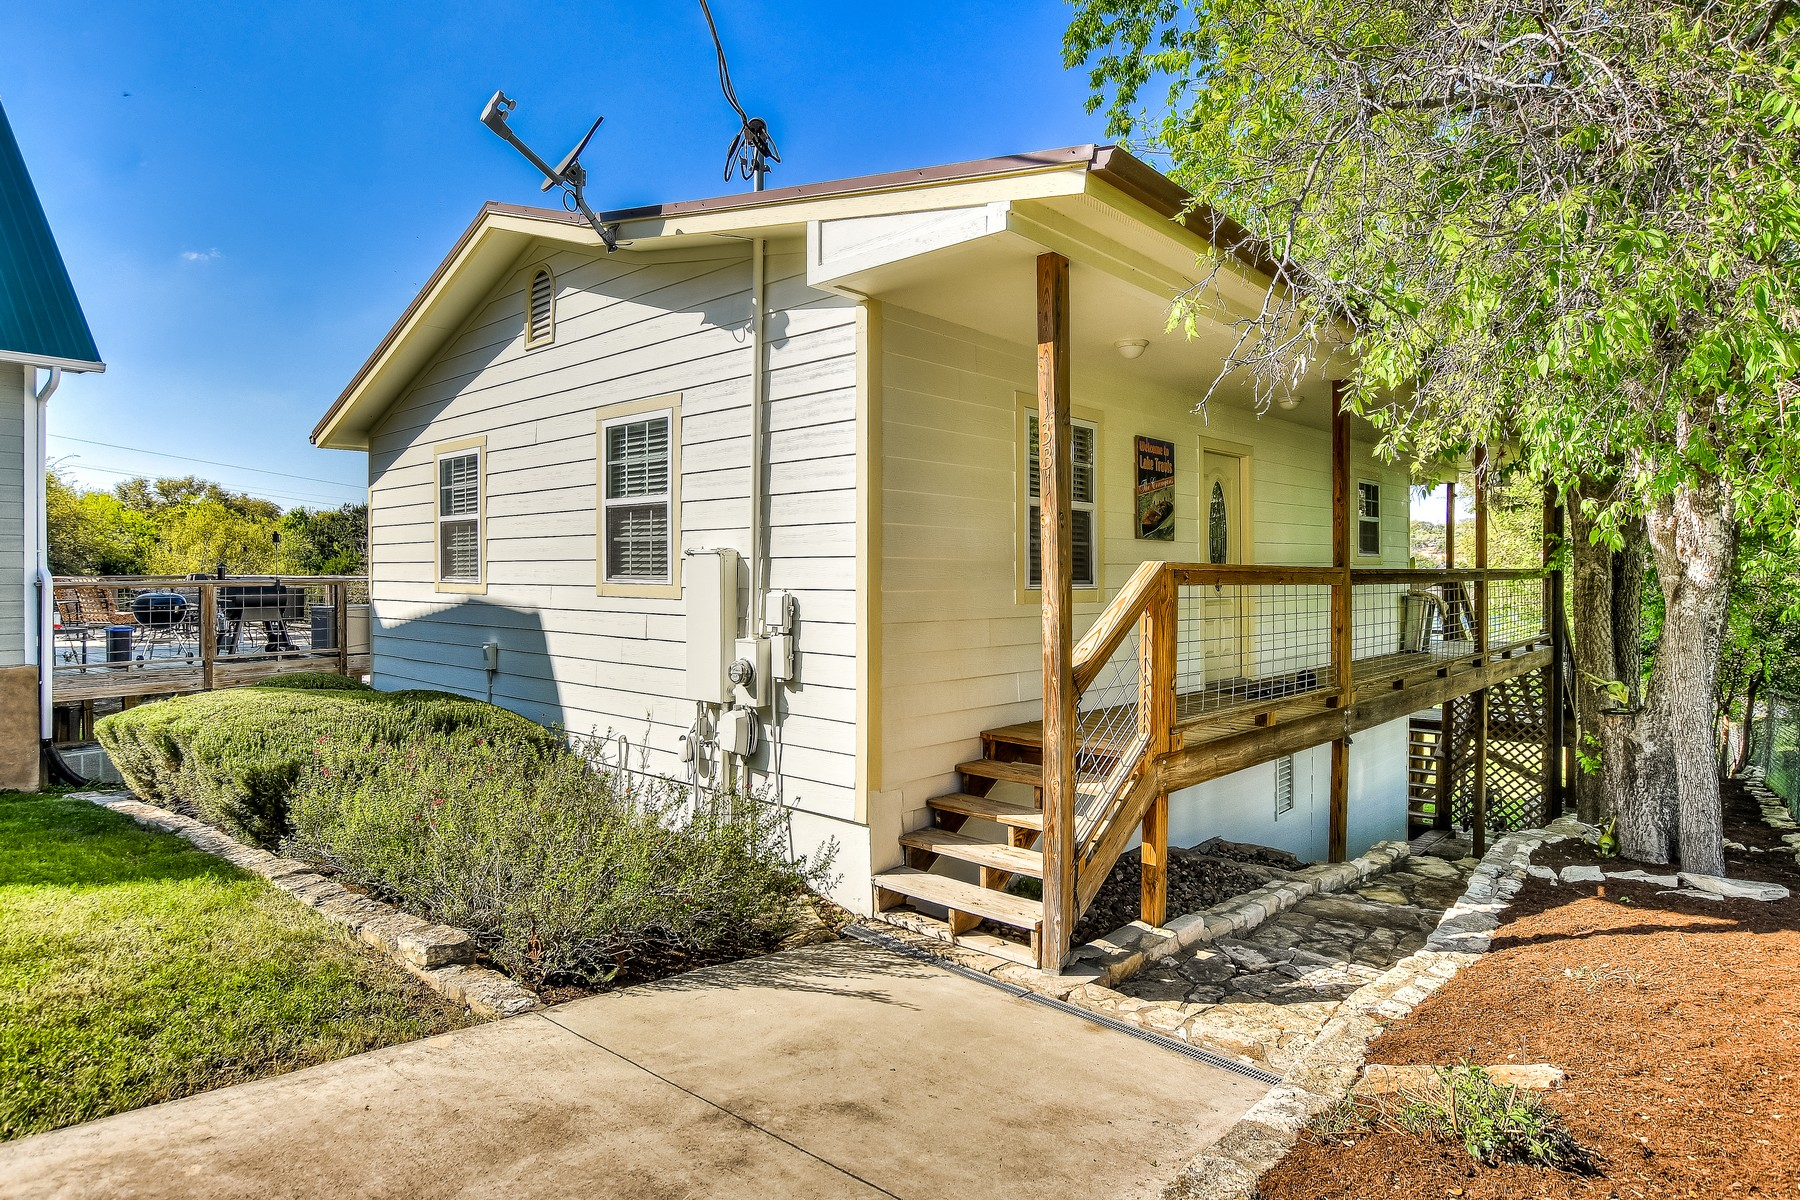 Single Family Home for Sale at Perfect Weekend Cabin on Lake Travis! 1331 Lakeshore Dr Spicewood, Texas, 78669 United States